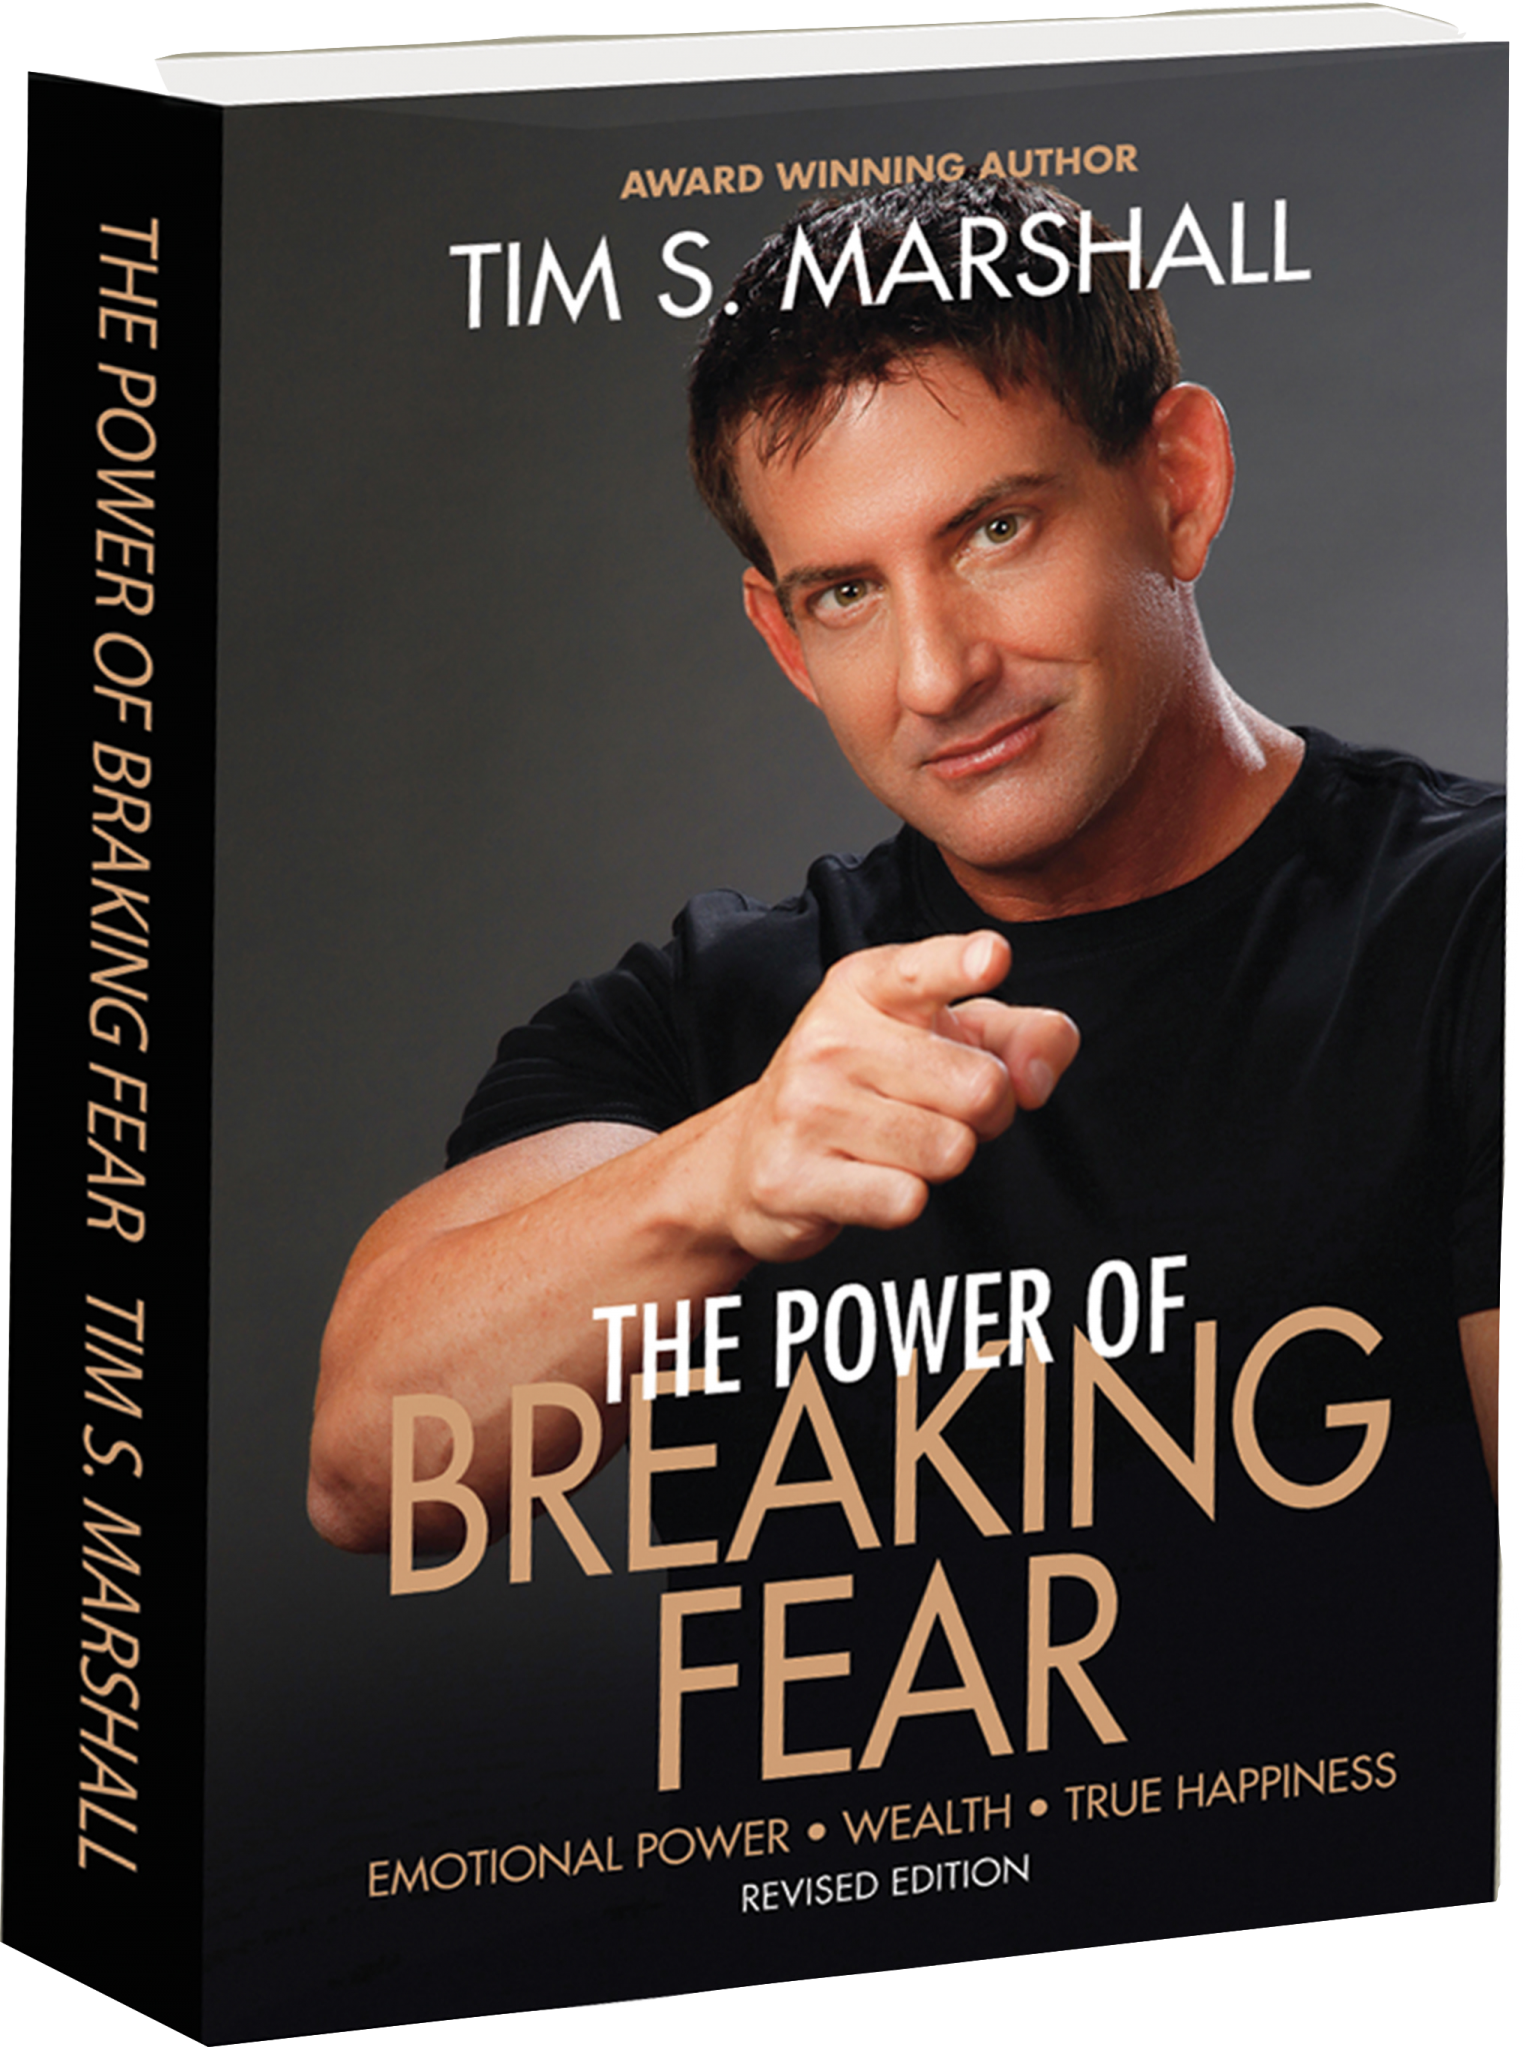 Face fears - Tim S Marshall